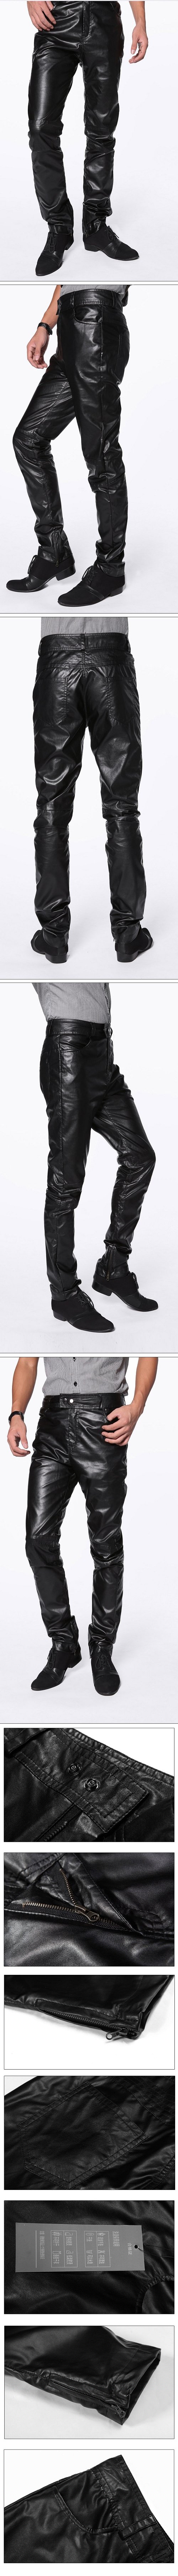 New Fashion Men Cool Faux Leather Slim Fit Trousers Pants Black M/L/XL/XXL SG1253